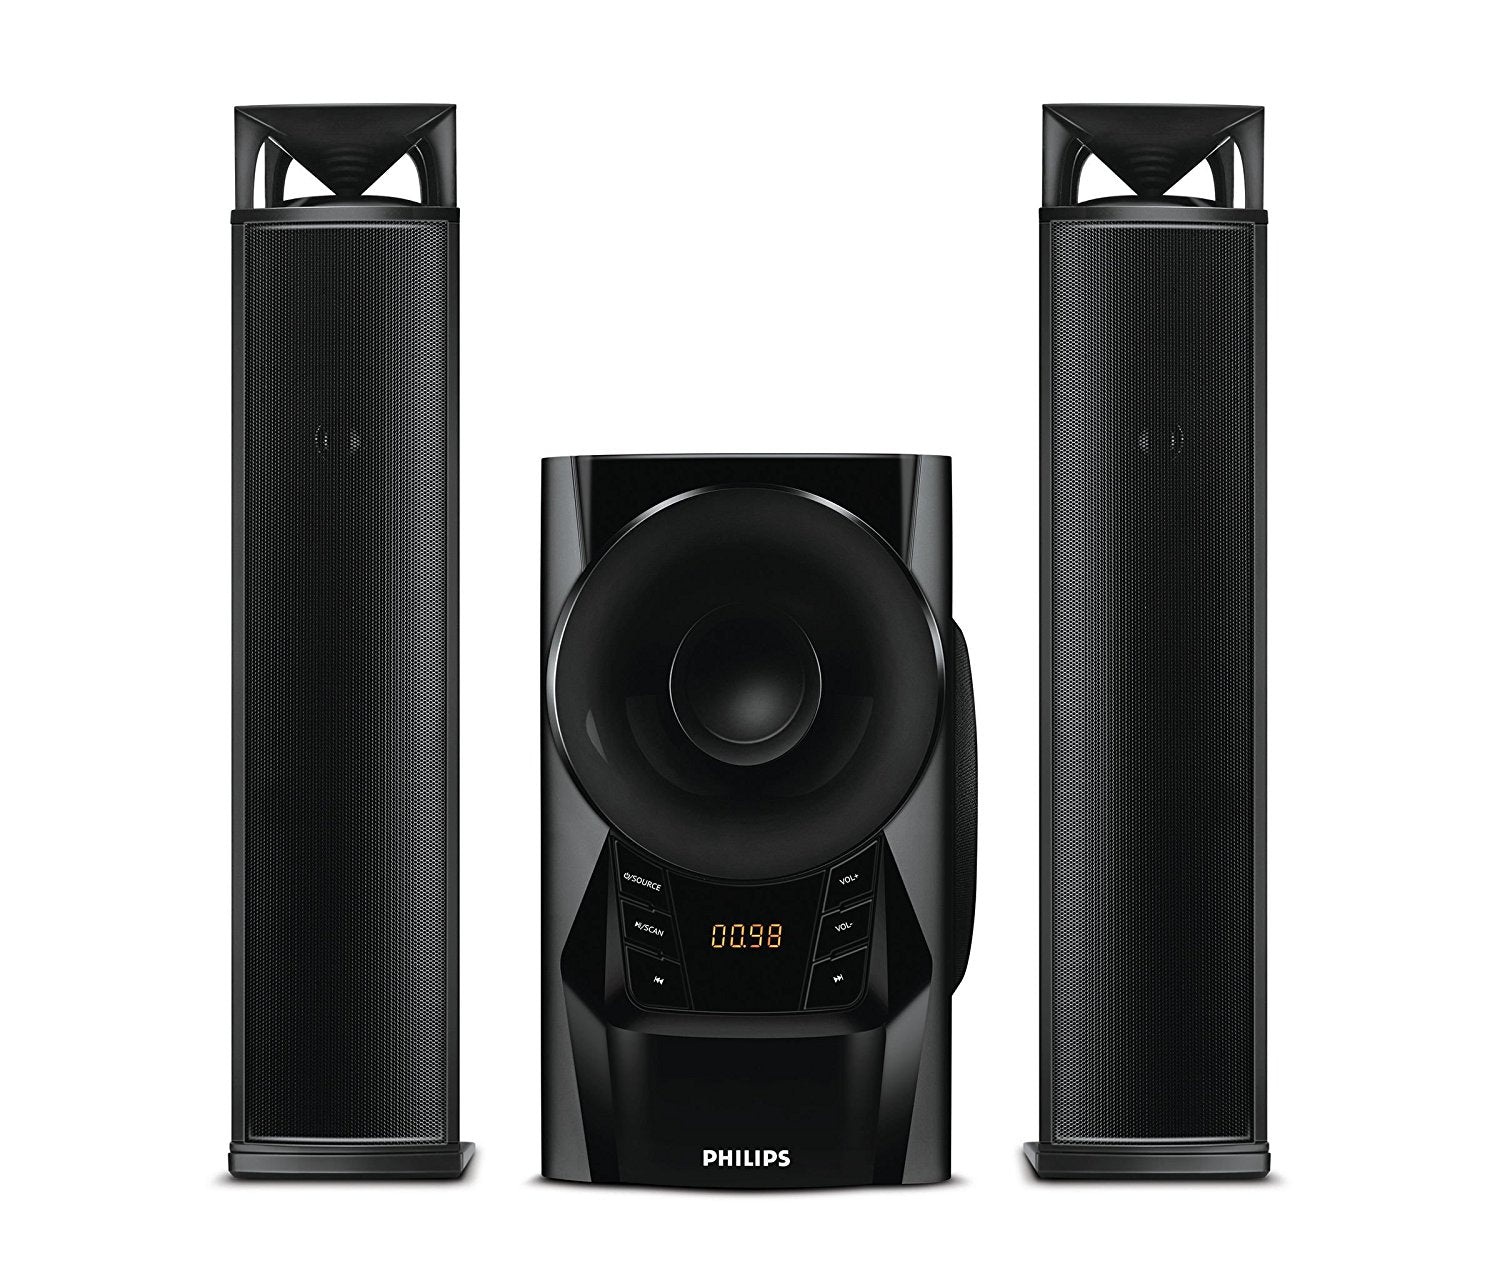 Philips MMS4200 - 2.1 Channel Convertible Soundbar Speaker System